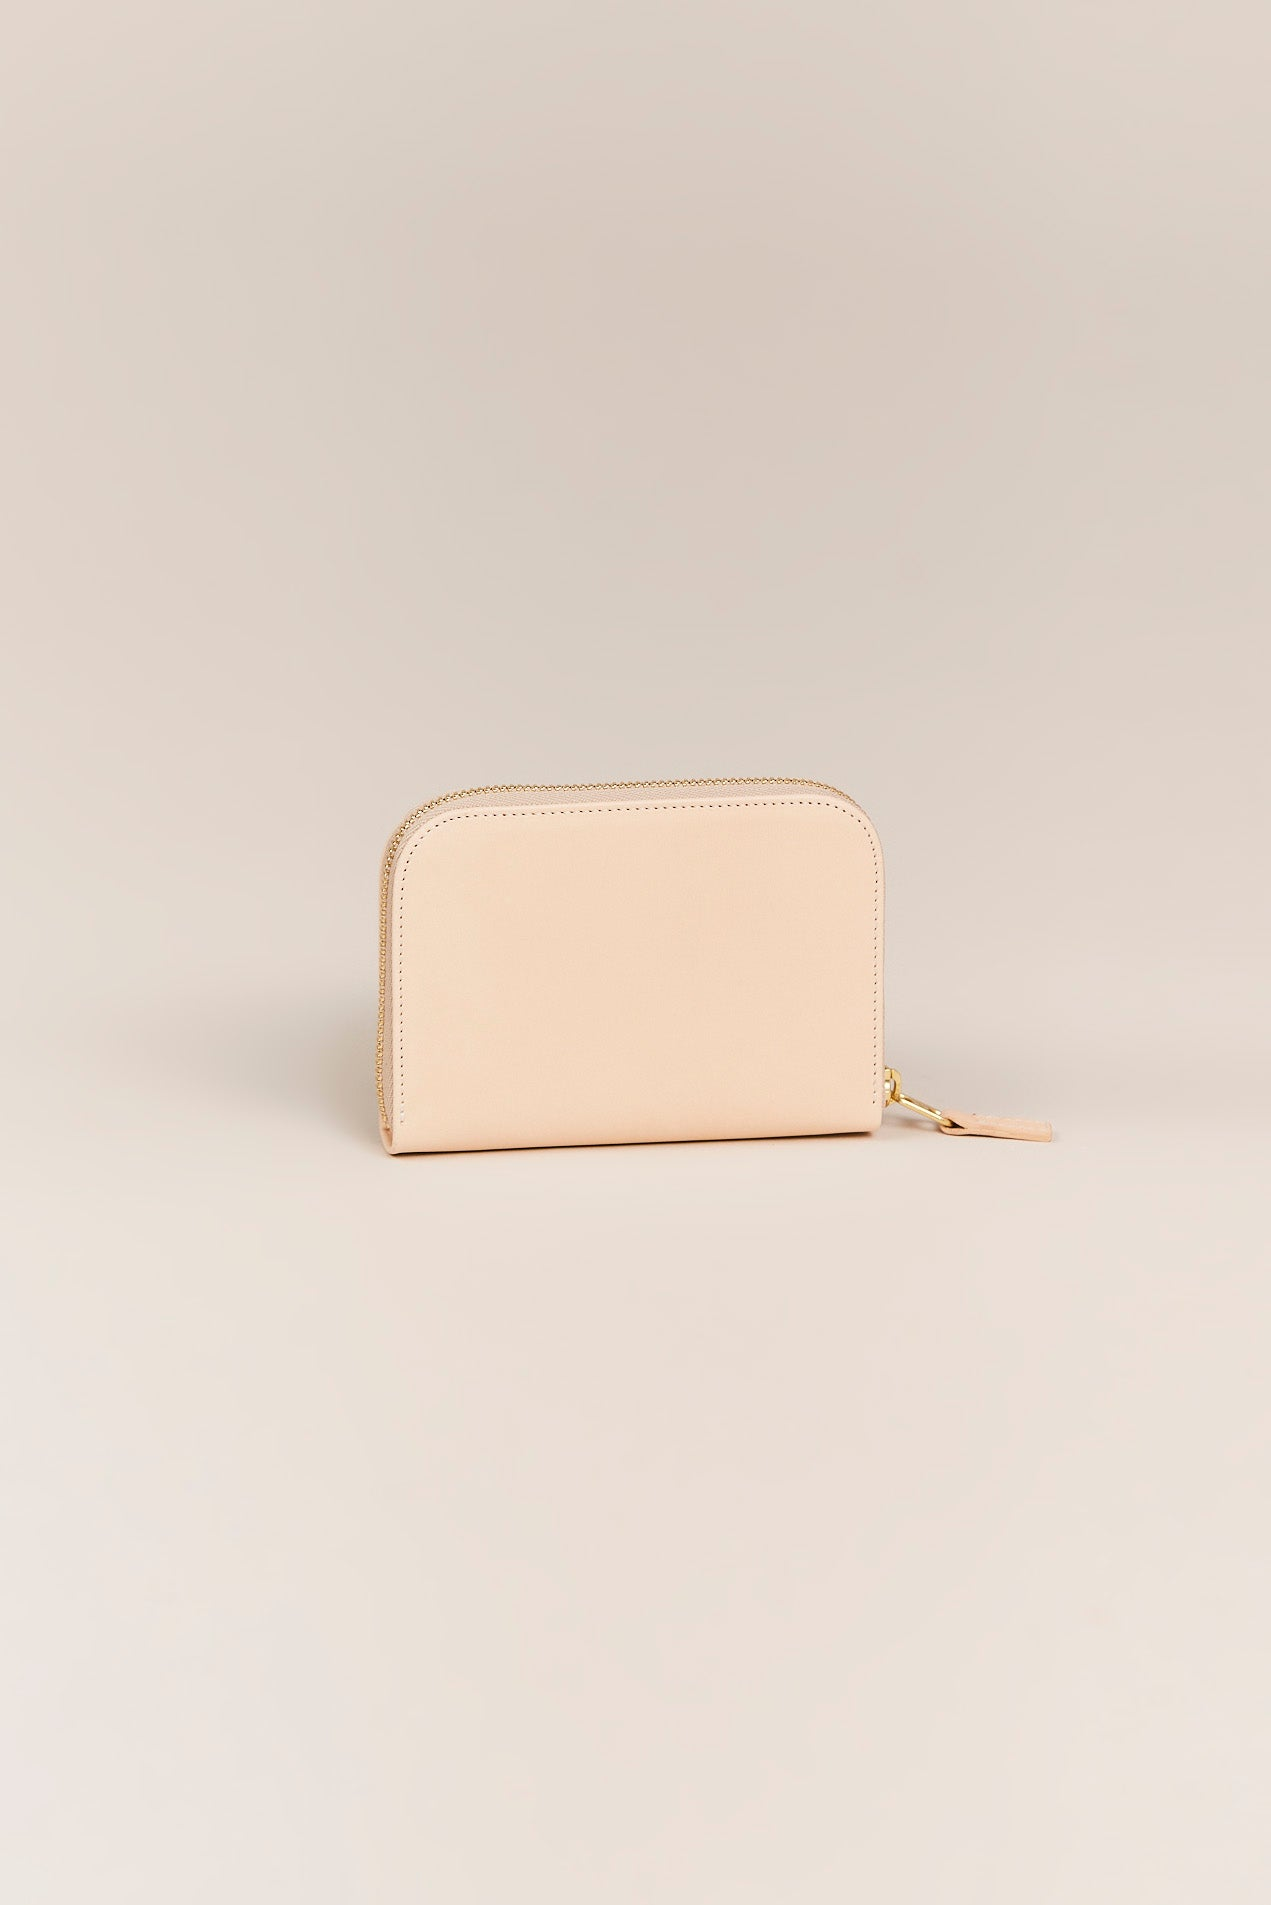 PB 0110 - CM 3.1 Small Zip Wallet, Natural